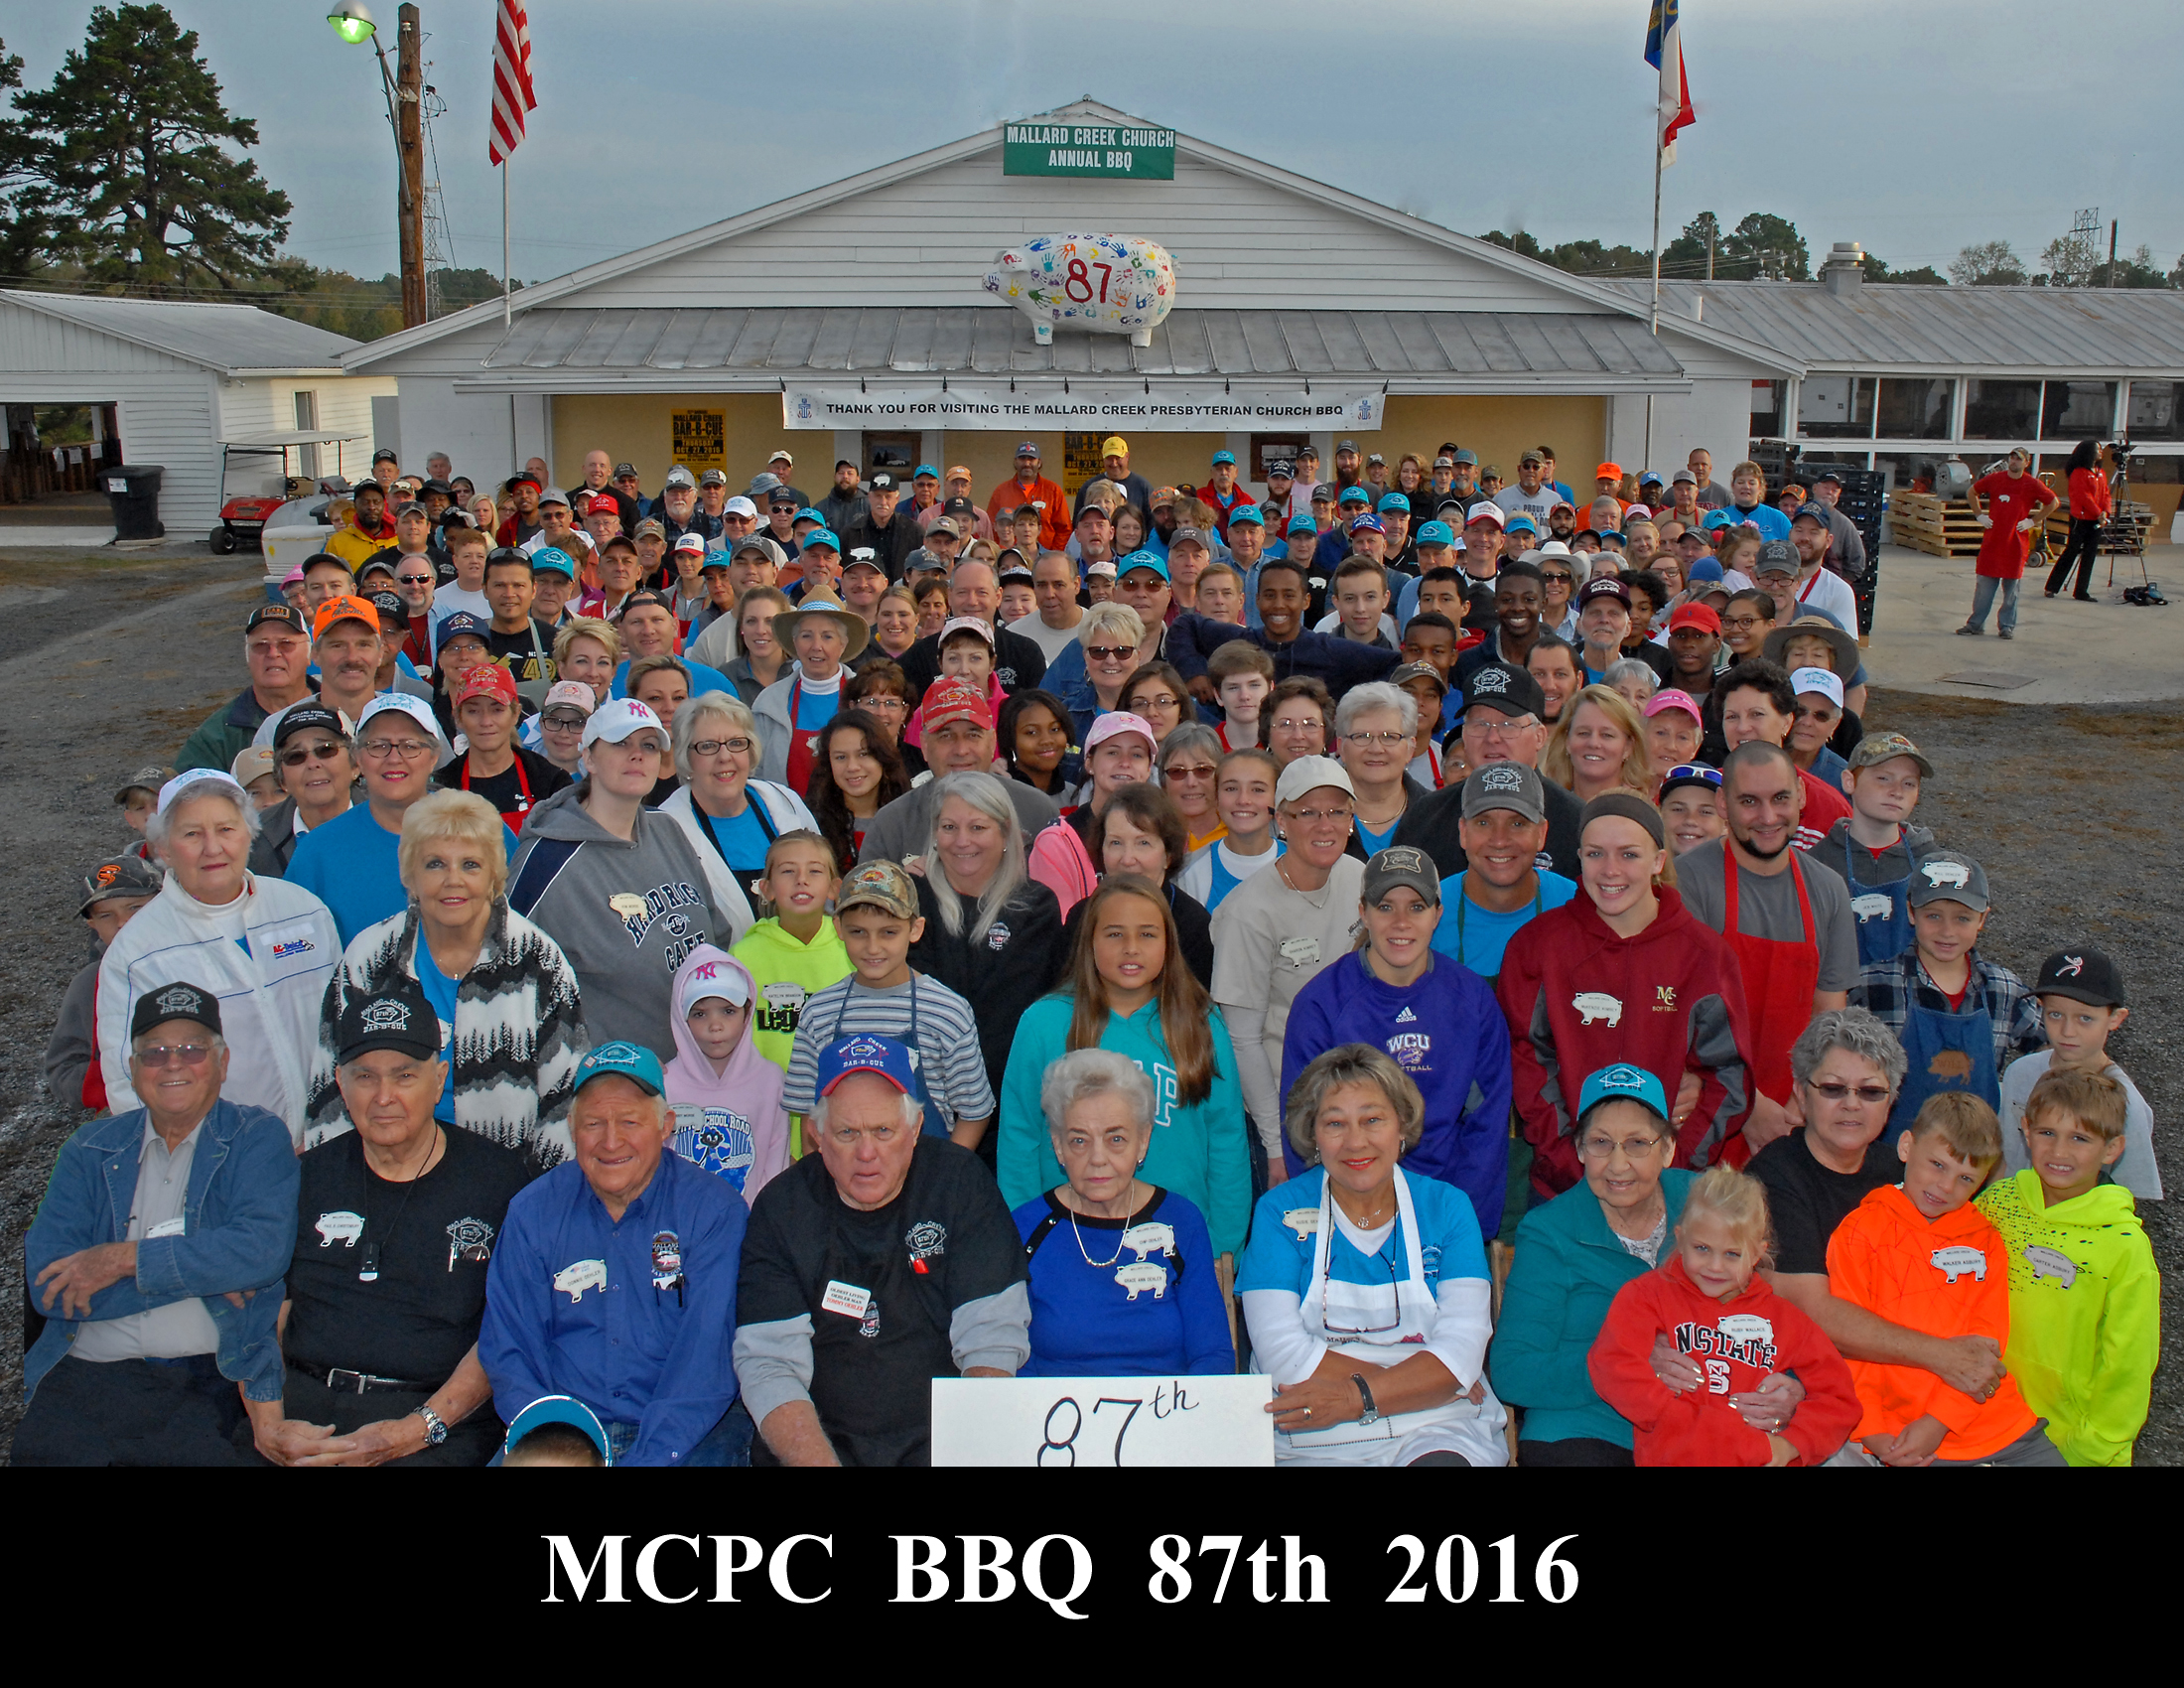 BBQ 87 Group Photo 2016